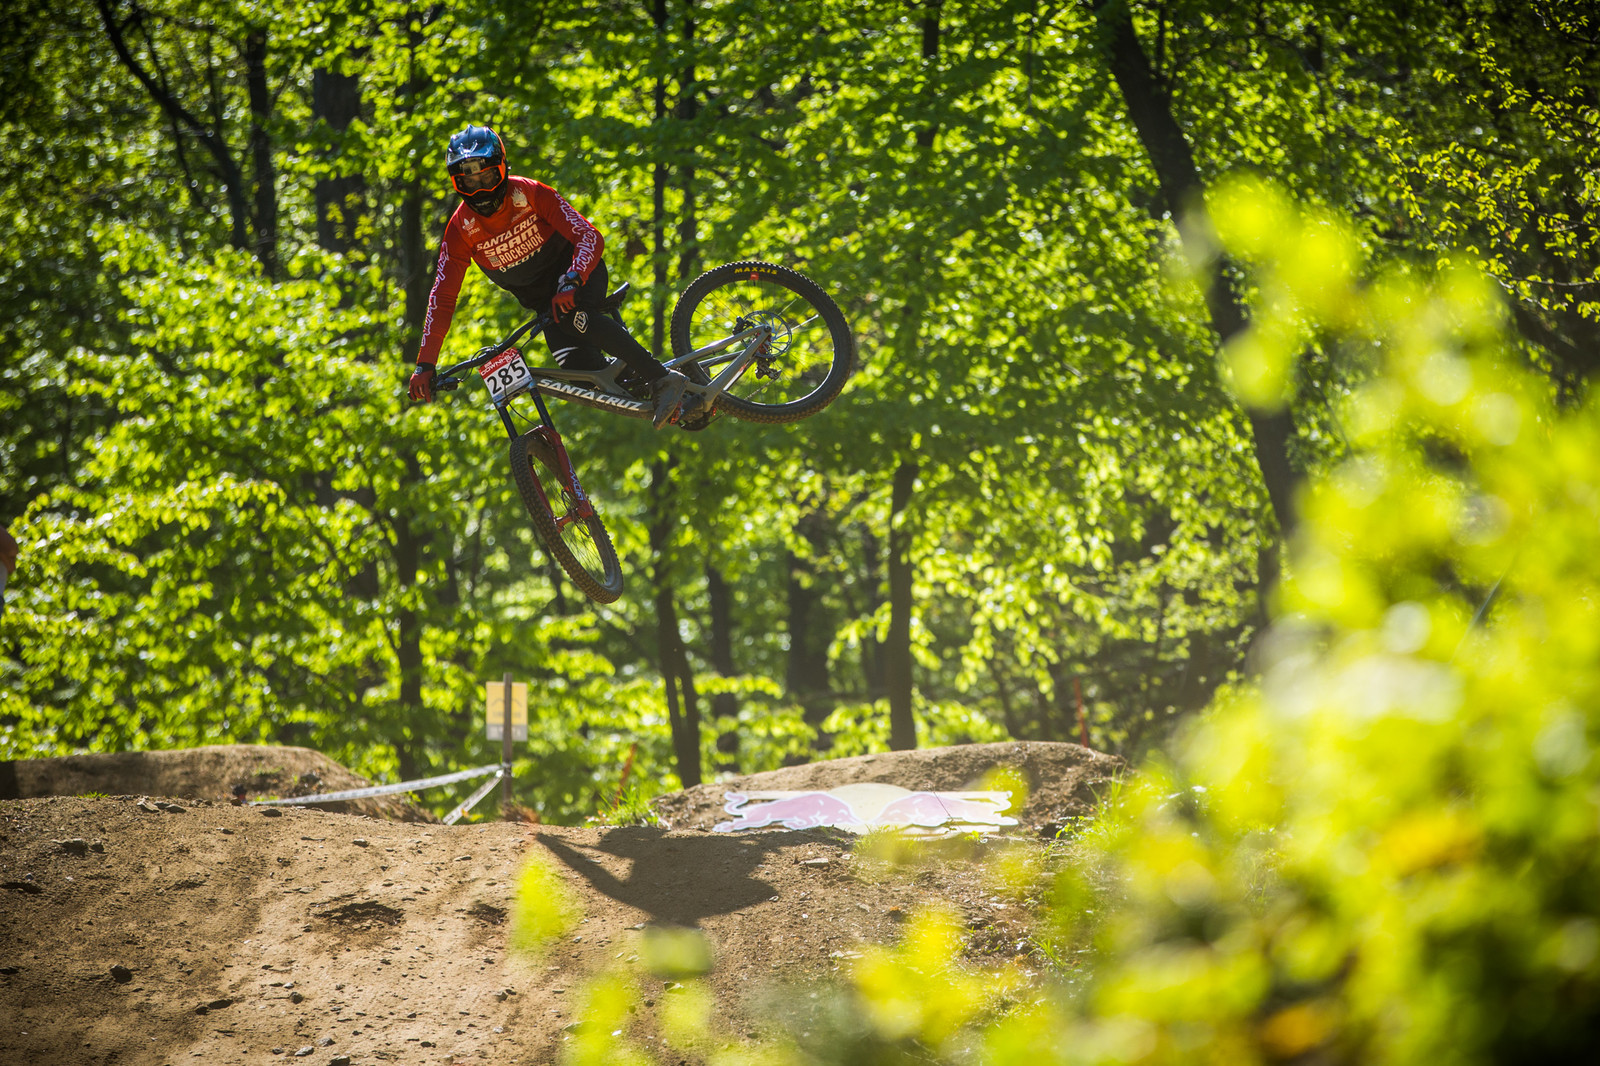 Mitch Ropelato - iXS Downhill Cup Maribor - Race Gallery - Mountain Biking Pictures - Vital MTB